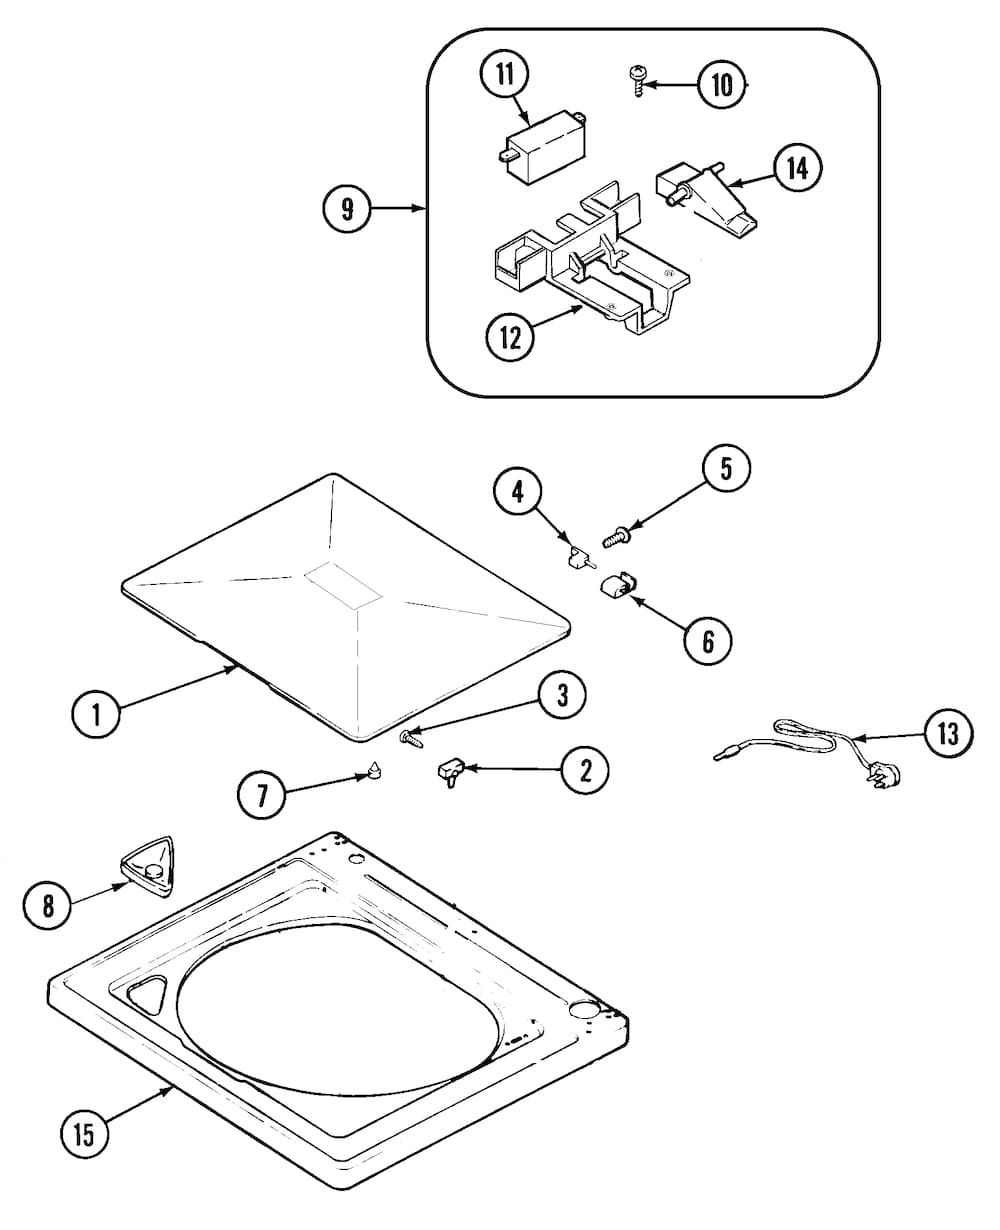 Hoover Hoover Laundry Parts | Model Hav2360Aww | Sears Partsdirect in Kenmore 80 Series Washer Parts Diagram